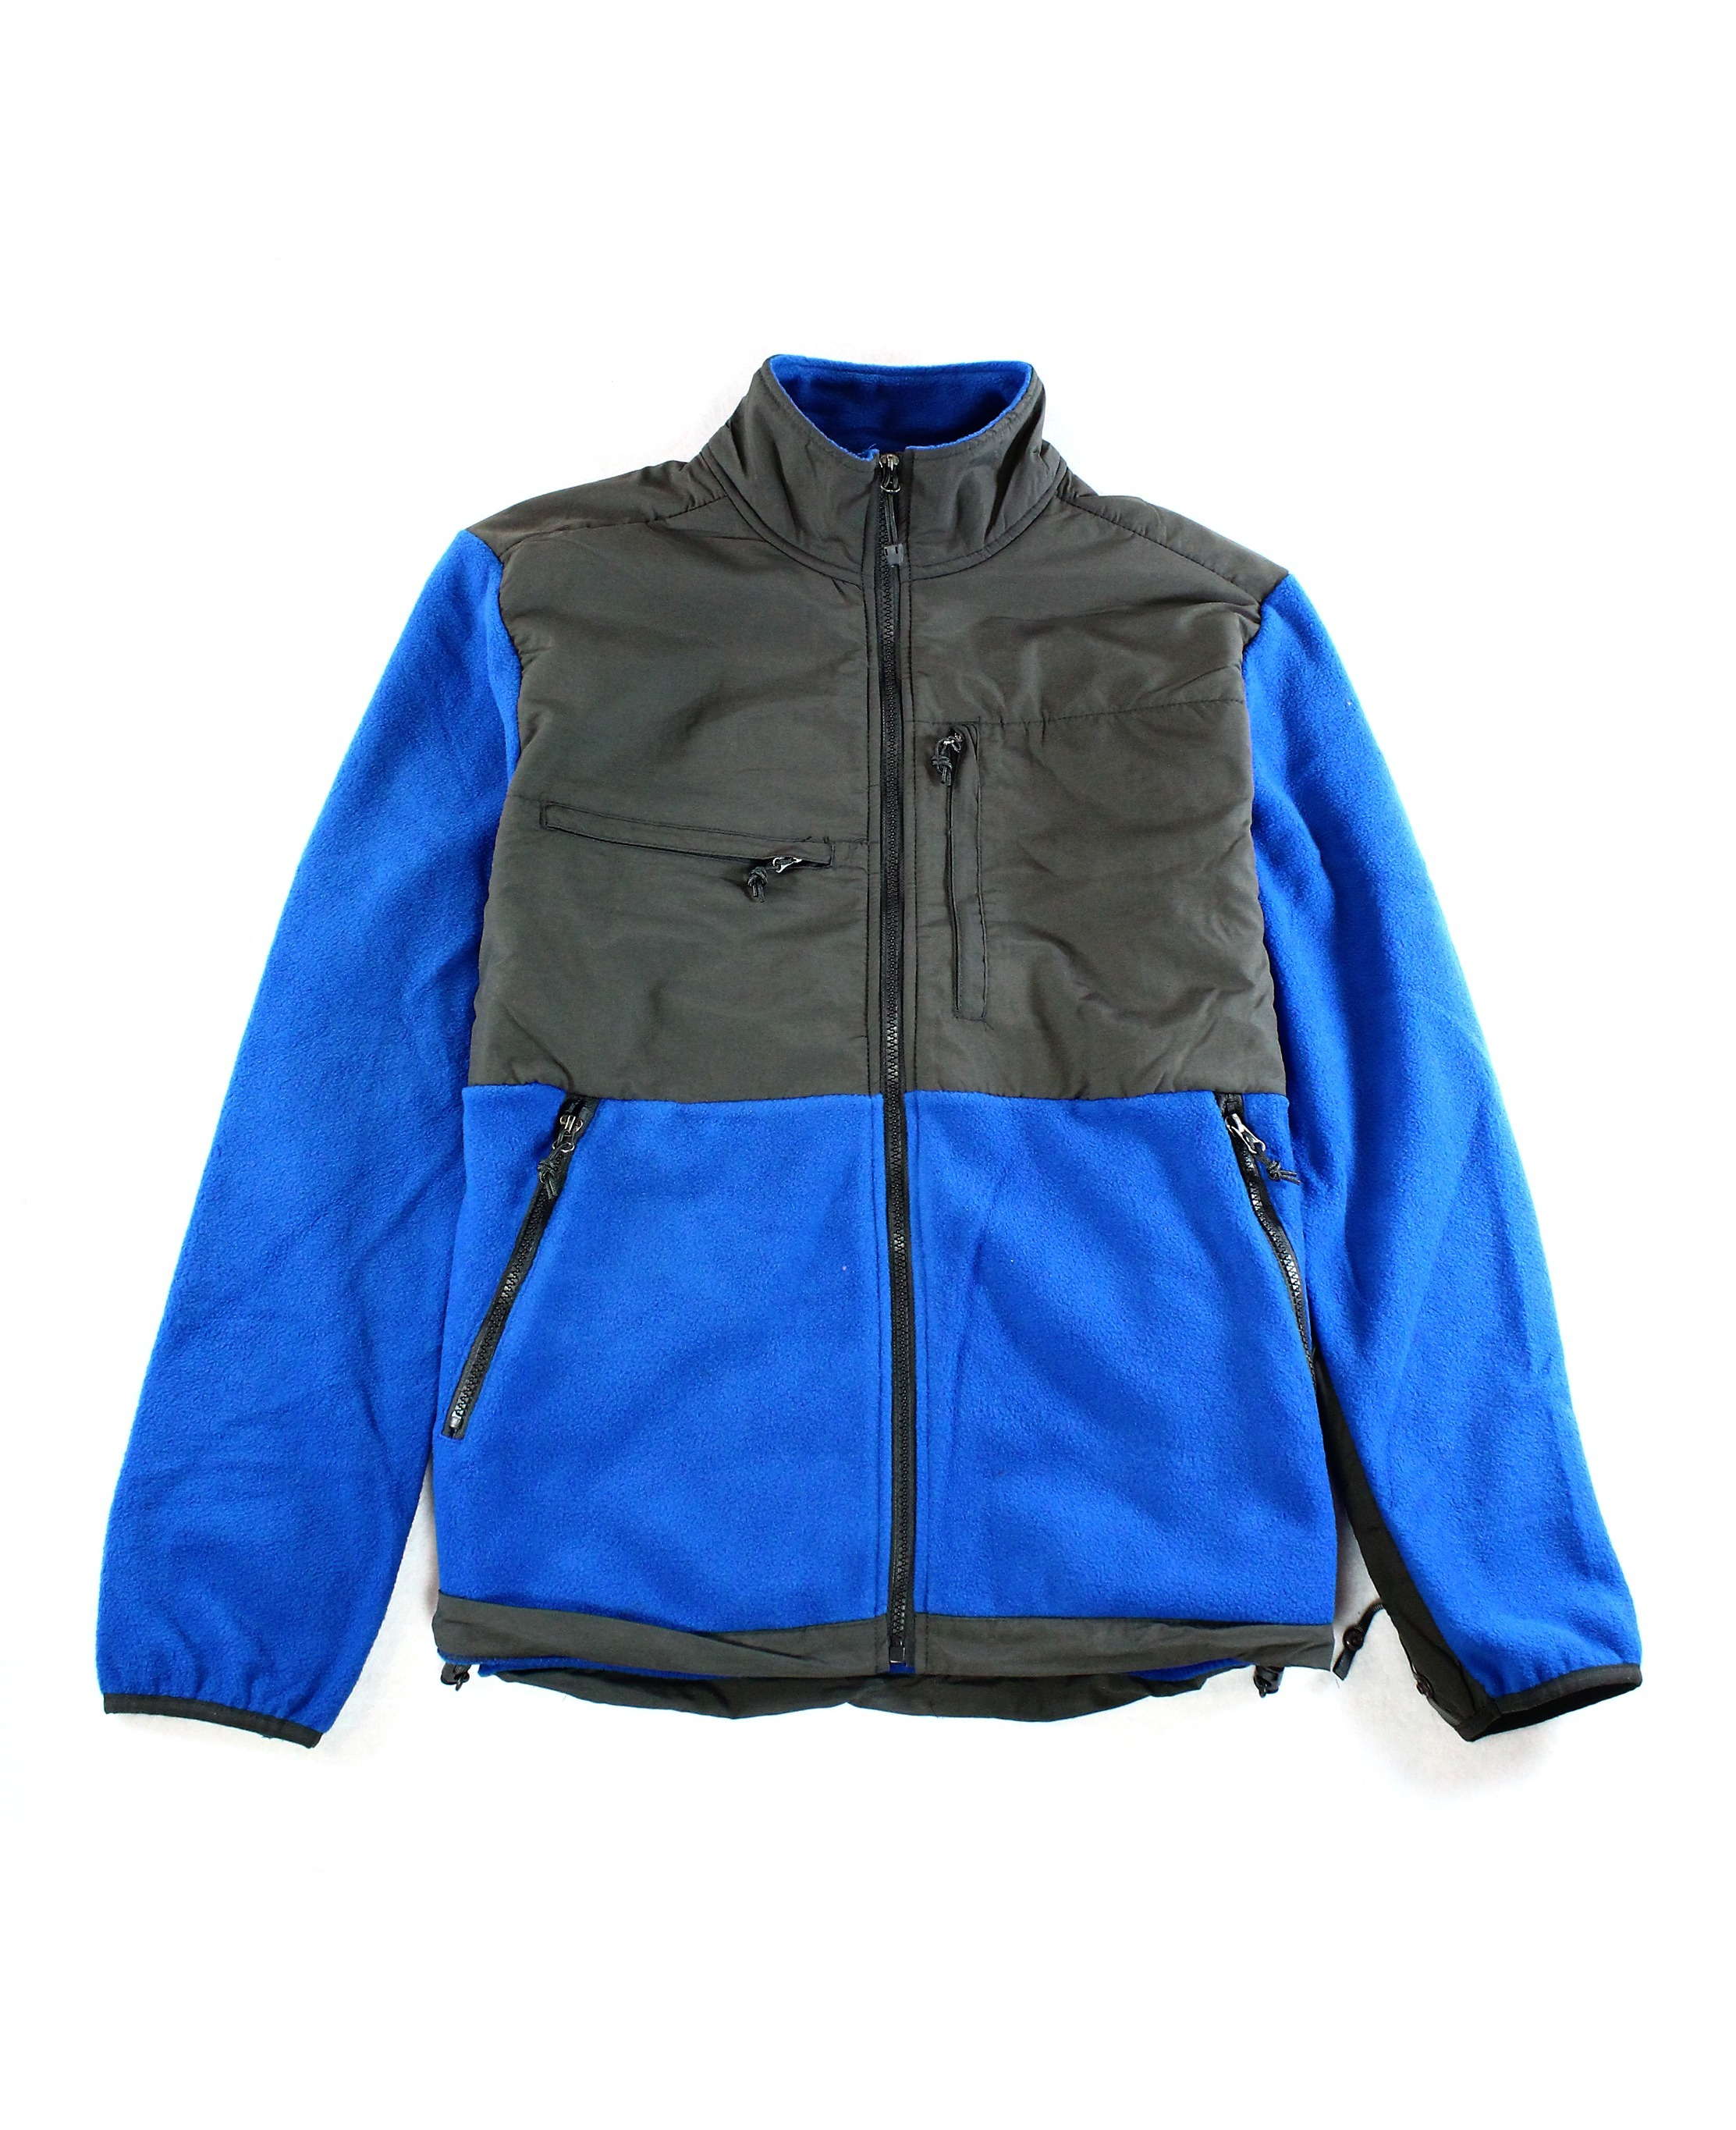 Mountain Fog Fleece Jacket NEW Two-Tone Colorblock Fall Zip Up $69